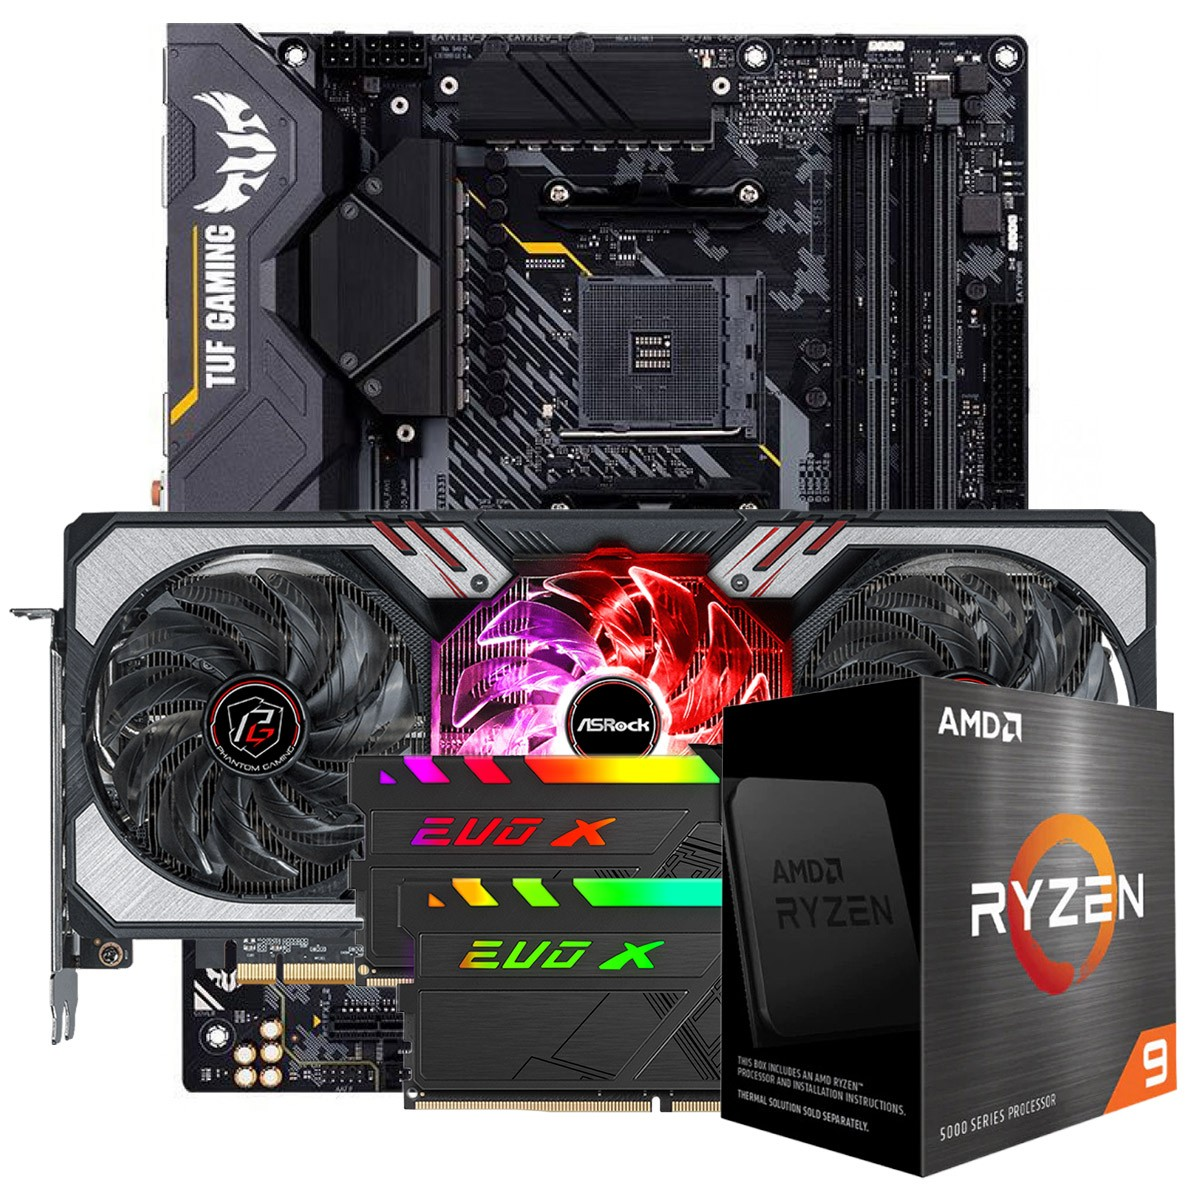 Kit Upgrade ASRock Radeon RX 6700 XT Phantom Gaming D OC + AMD Ryzen 9 5900X + ASUS TUF Gaming X570-Plus + Memória DDR4 16GB (2x8GB) 3600MHz